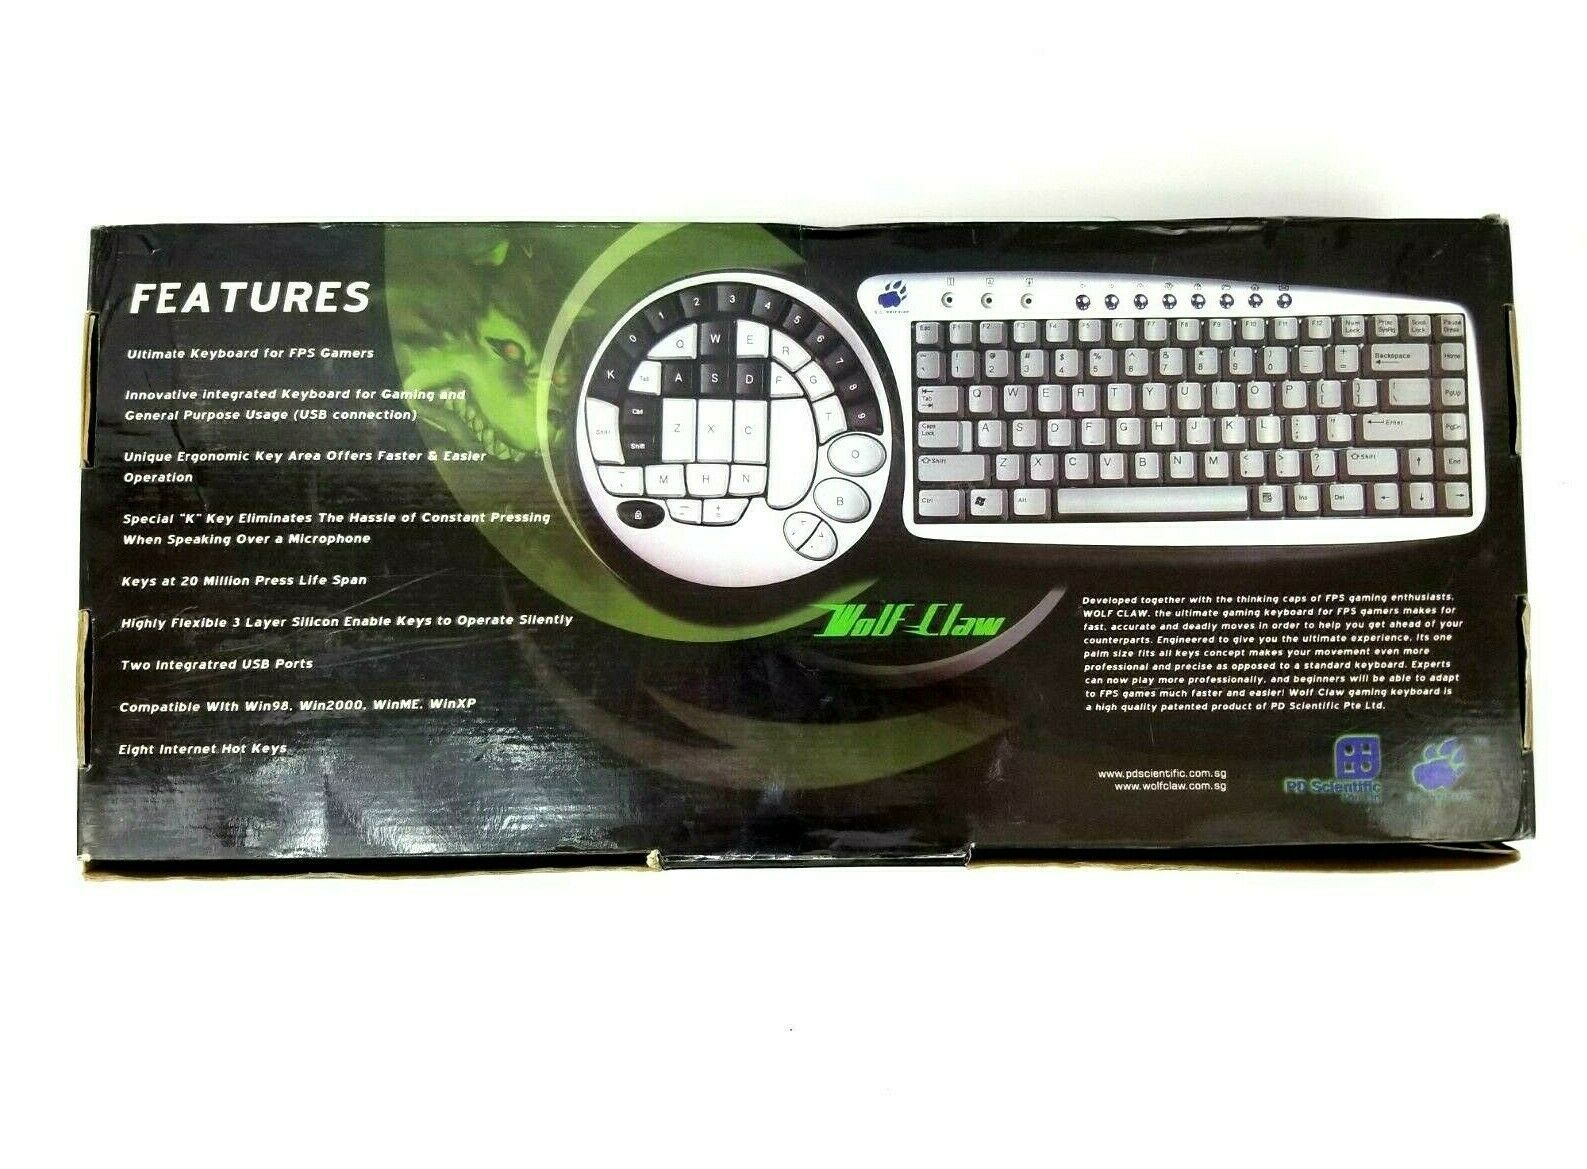 Wolf Claw II The Ultimate Gaming Keyboard for FPS Gamers SK-6745 - New Open Box image 3